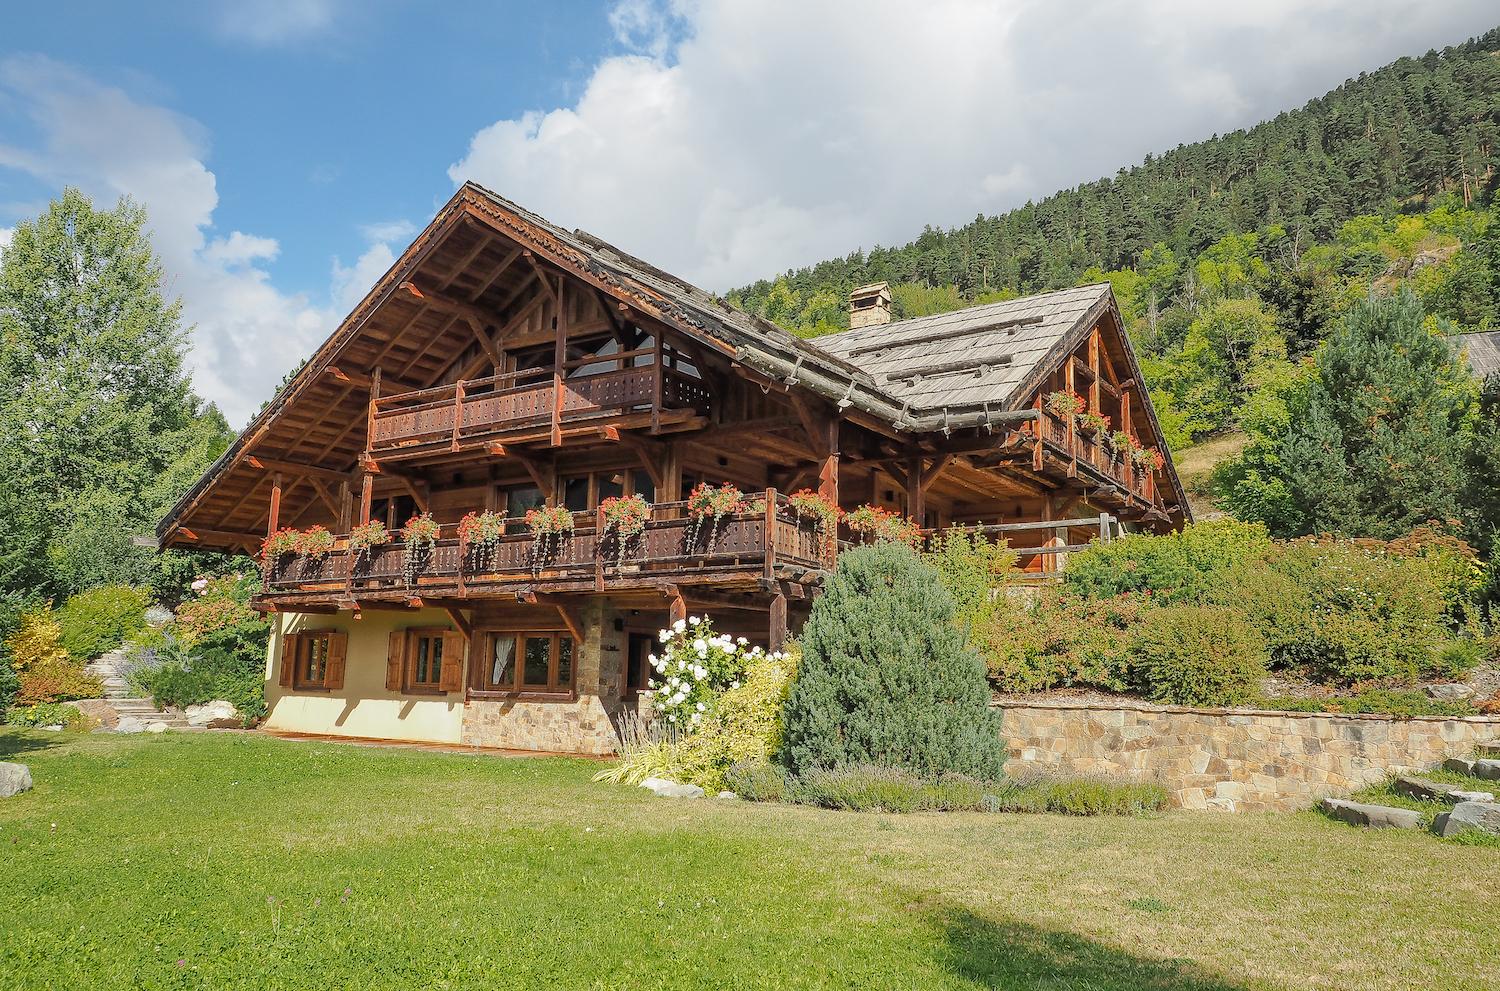 15/Chalet Grande Ourse/Chalet-luxe-serre-chevalier-grande-ourse.jpg